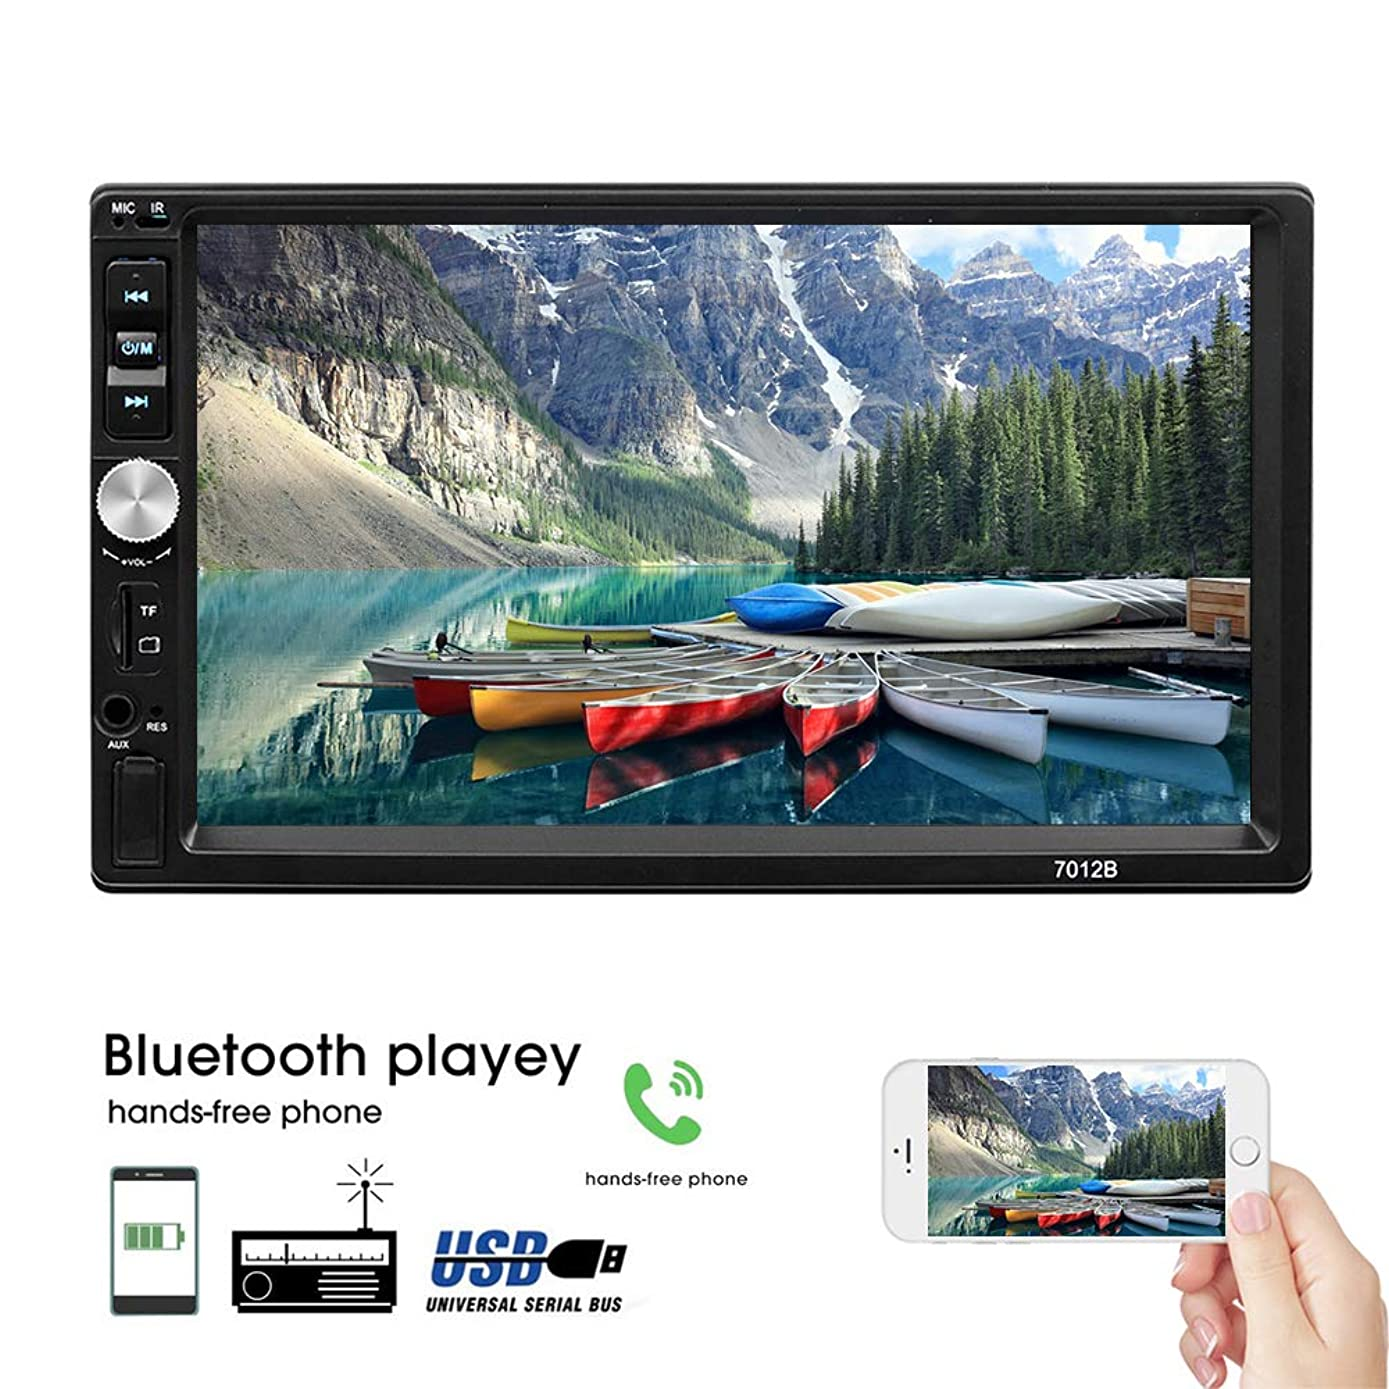 Car Stereo Multimedia Receiver Double Din 7 Inch Touchscreen LCD Monitor, Bluetooth Audio and Hands Free Calling, MP5 Player, USB Port, AUX Input, Rear View Camera,FM Radio Receiver